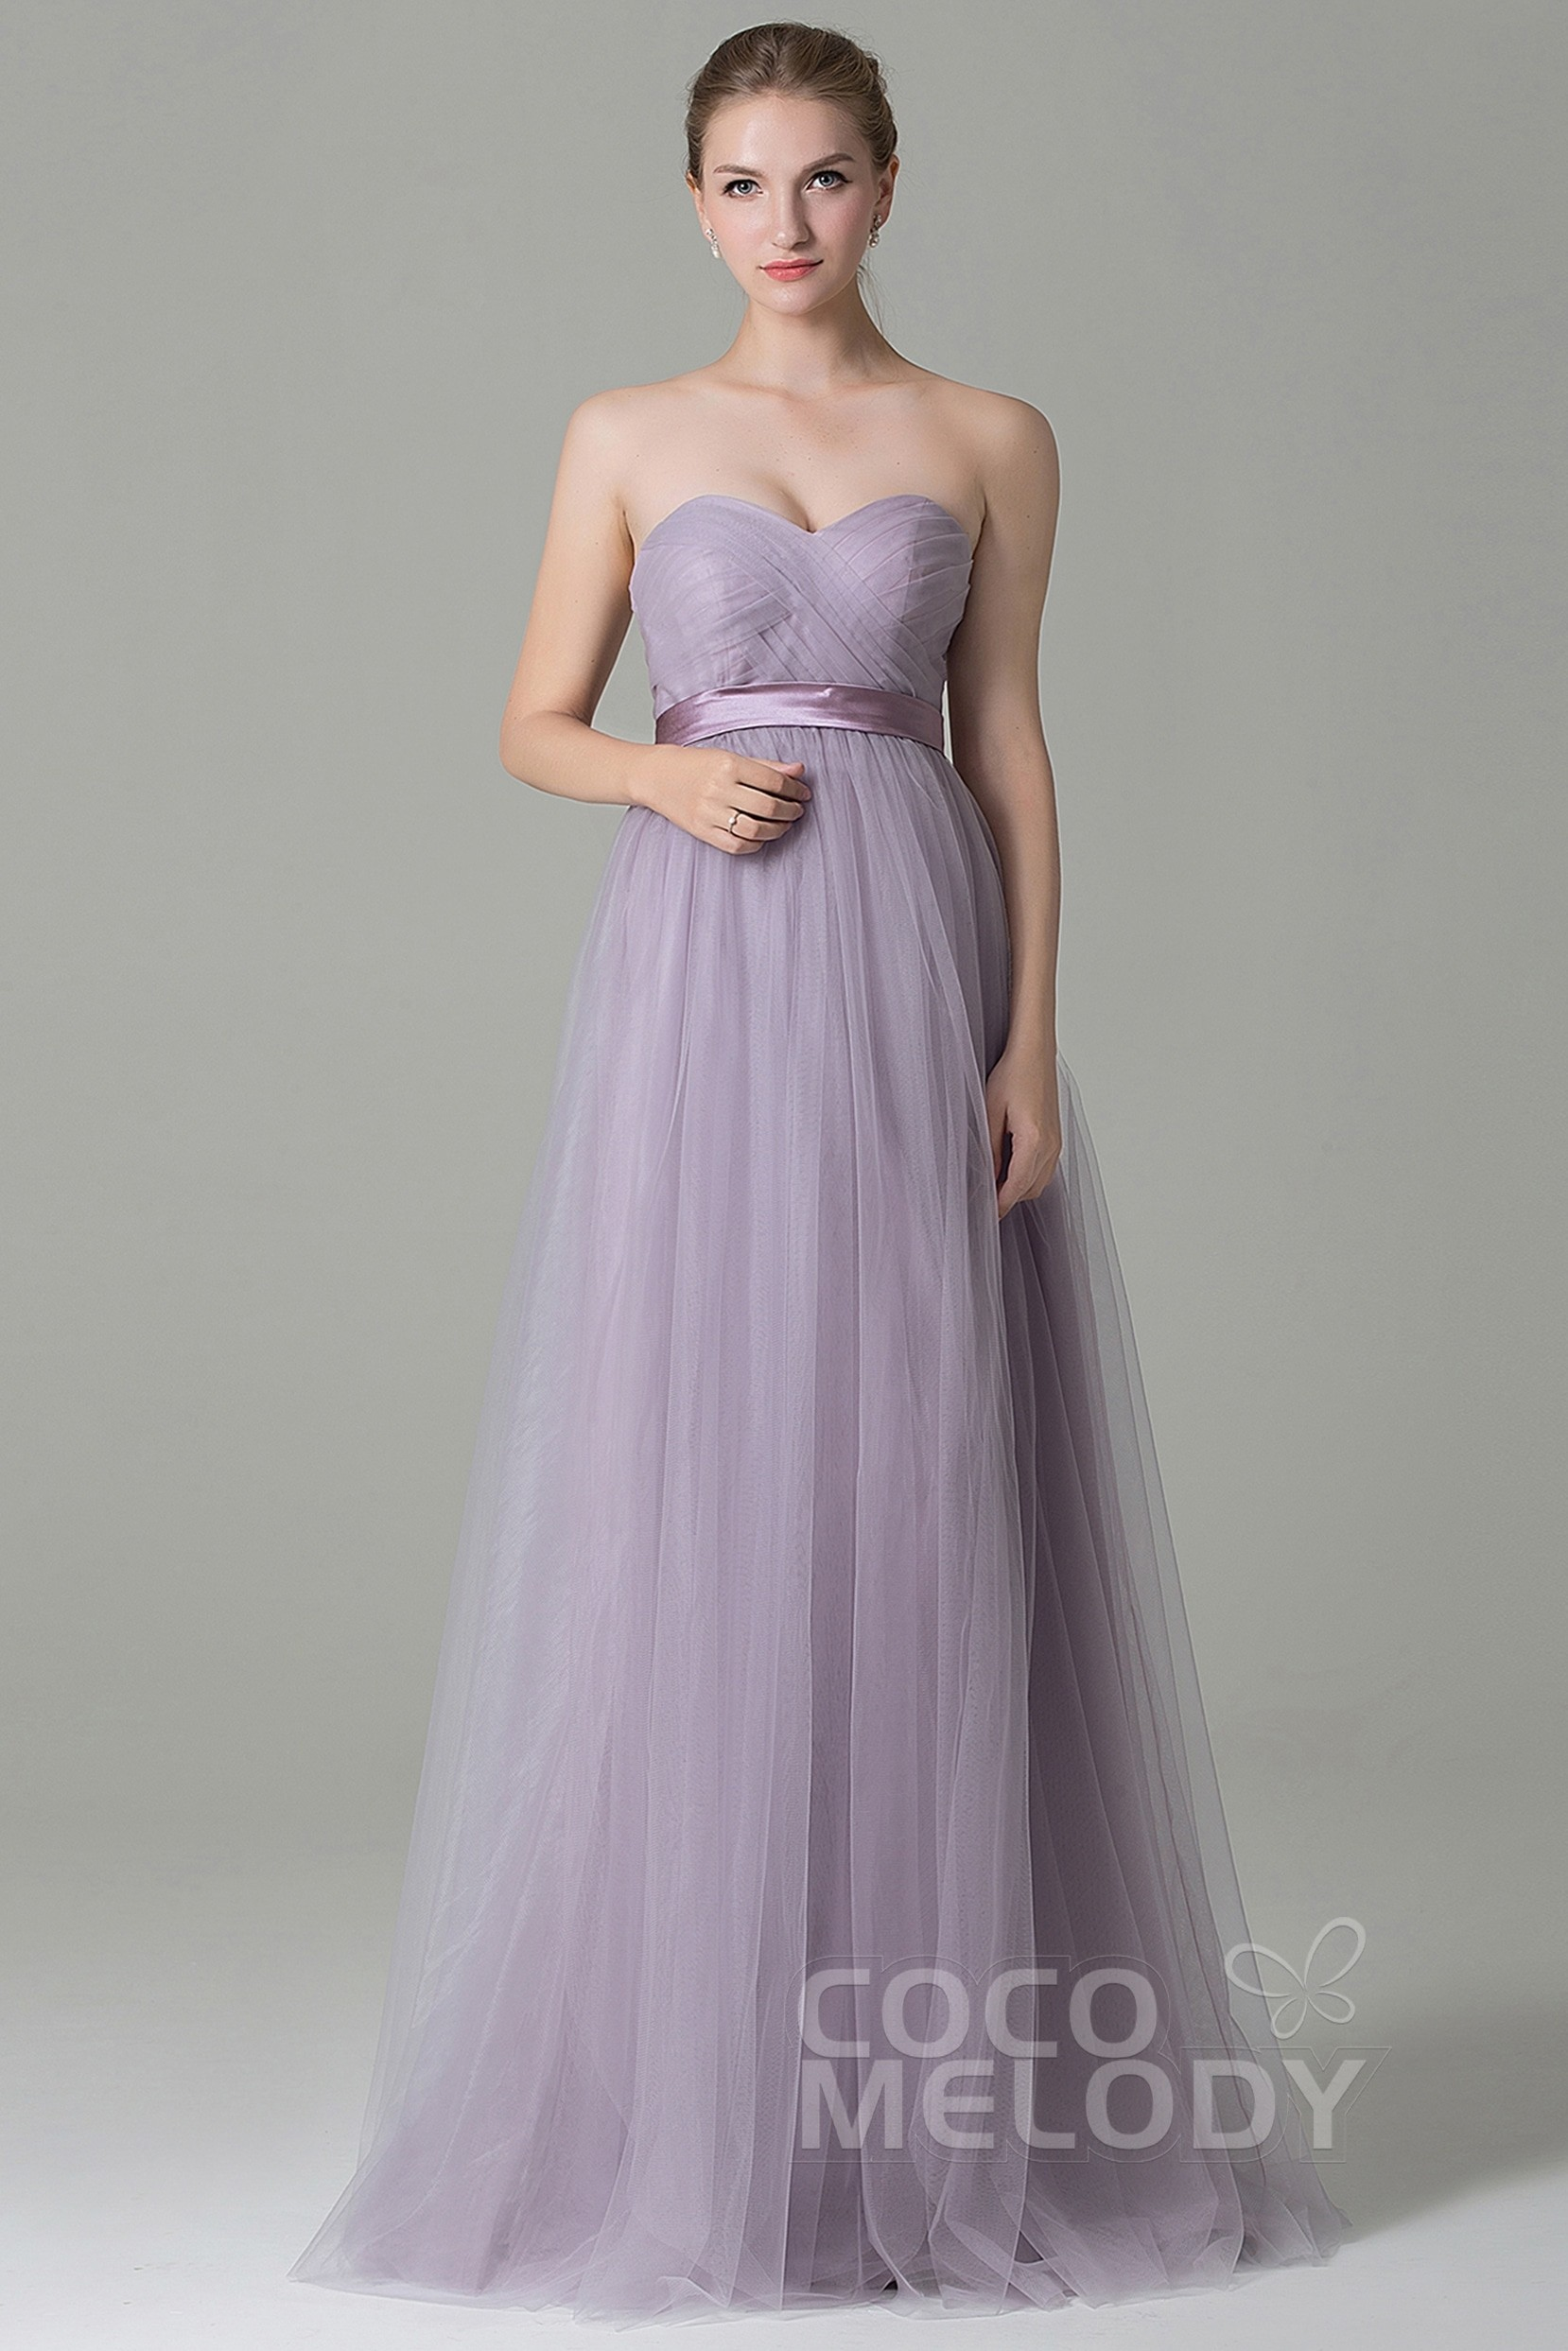 Tulle Dresses Bridesmaid